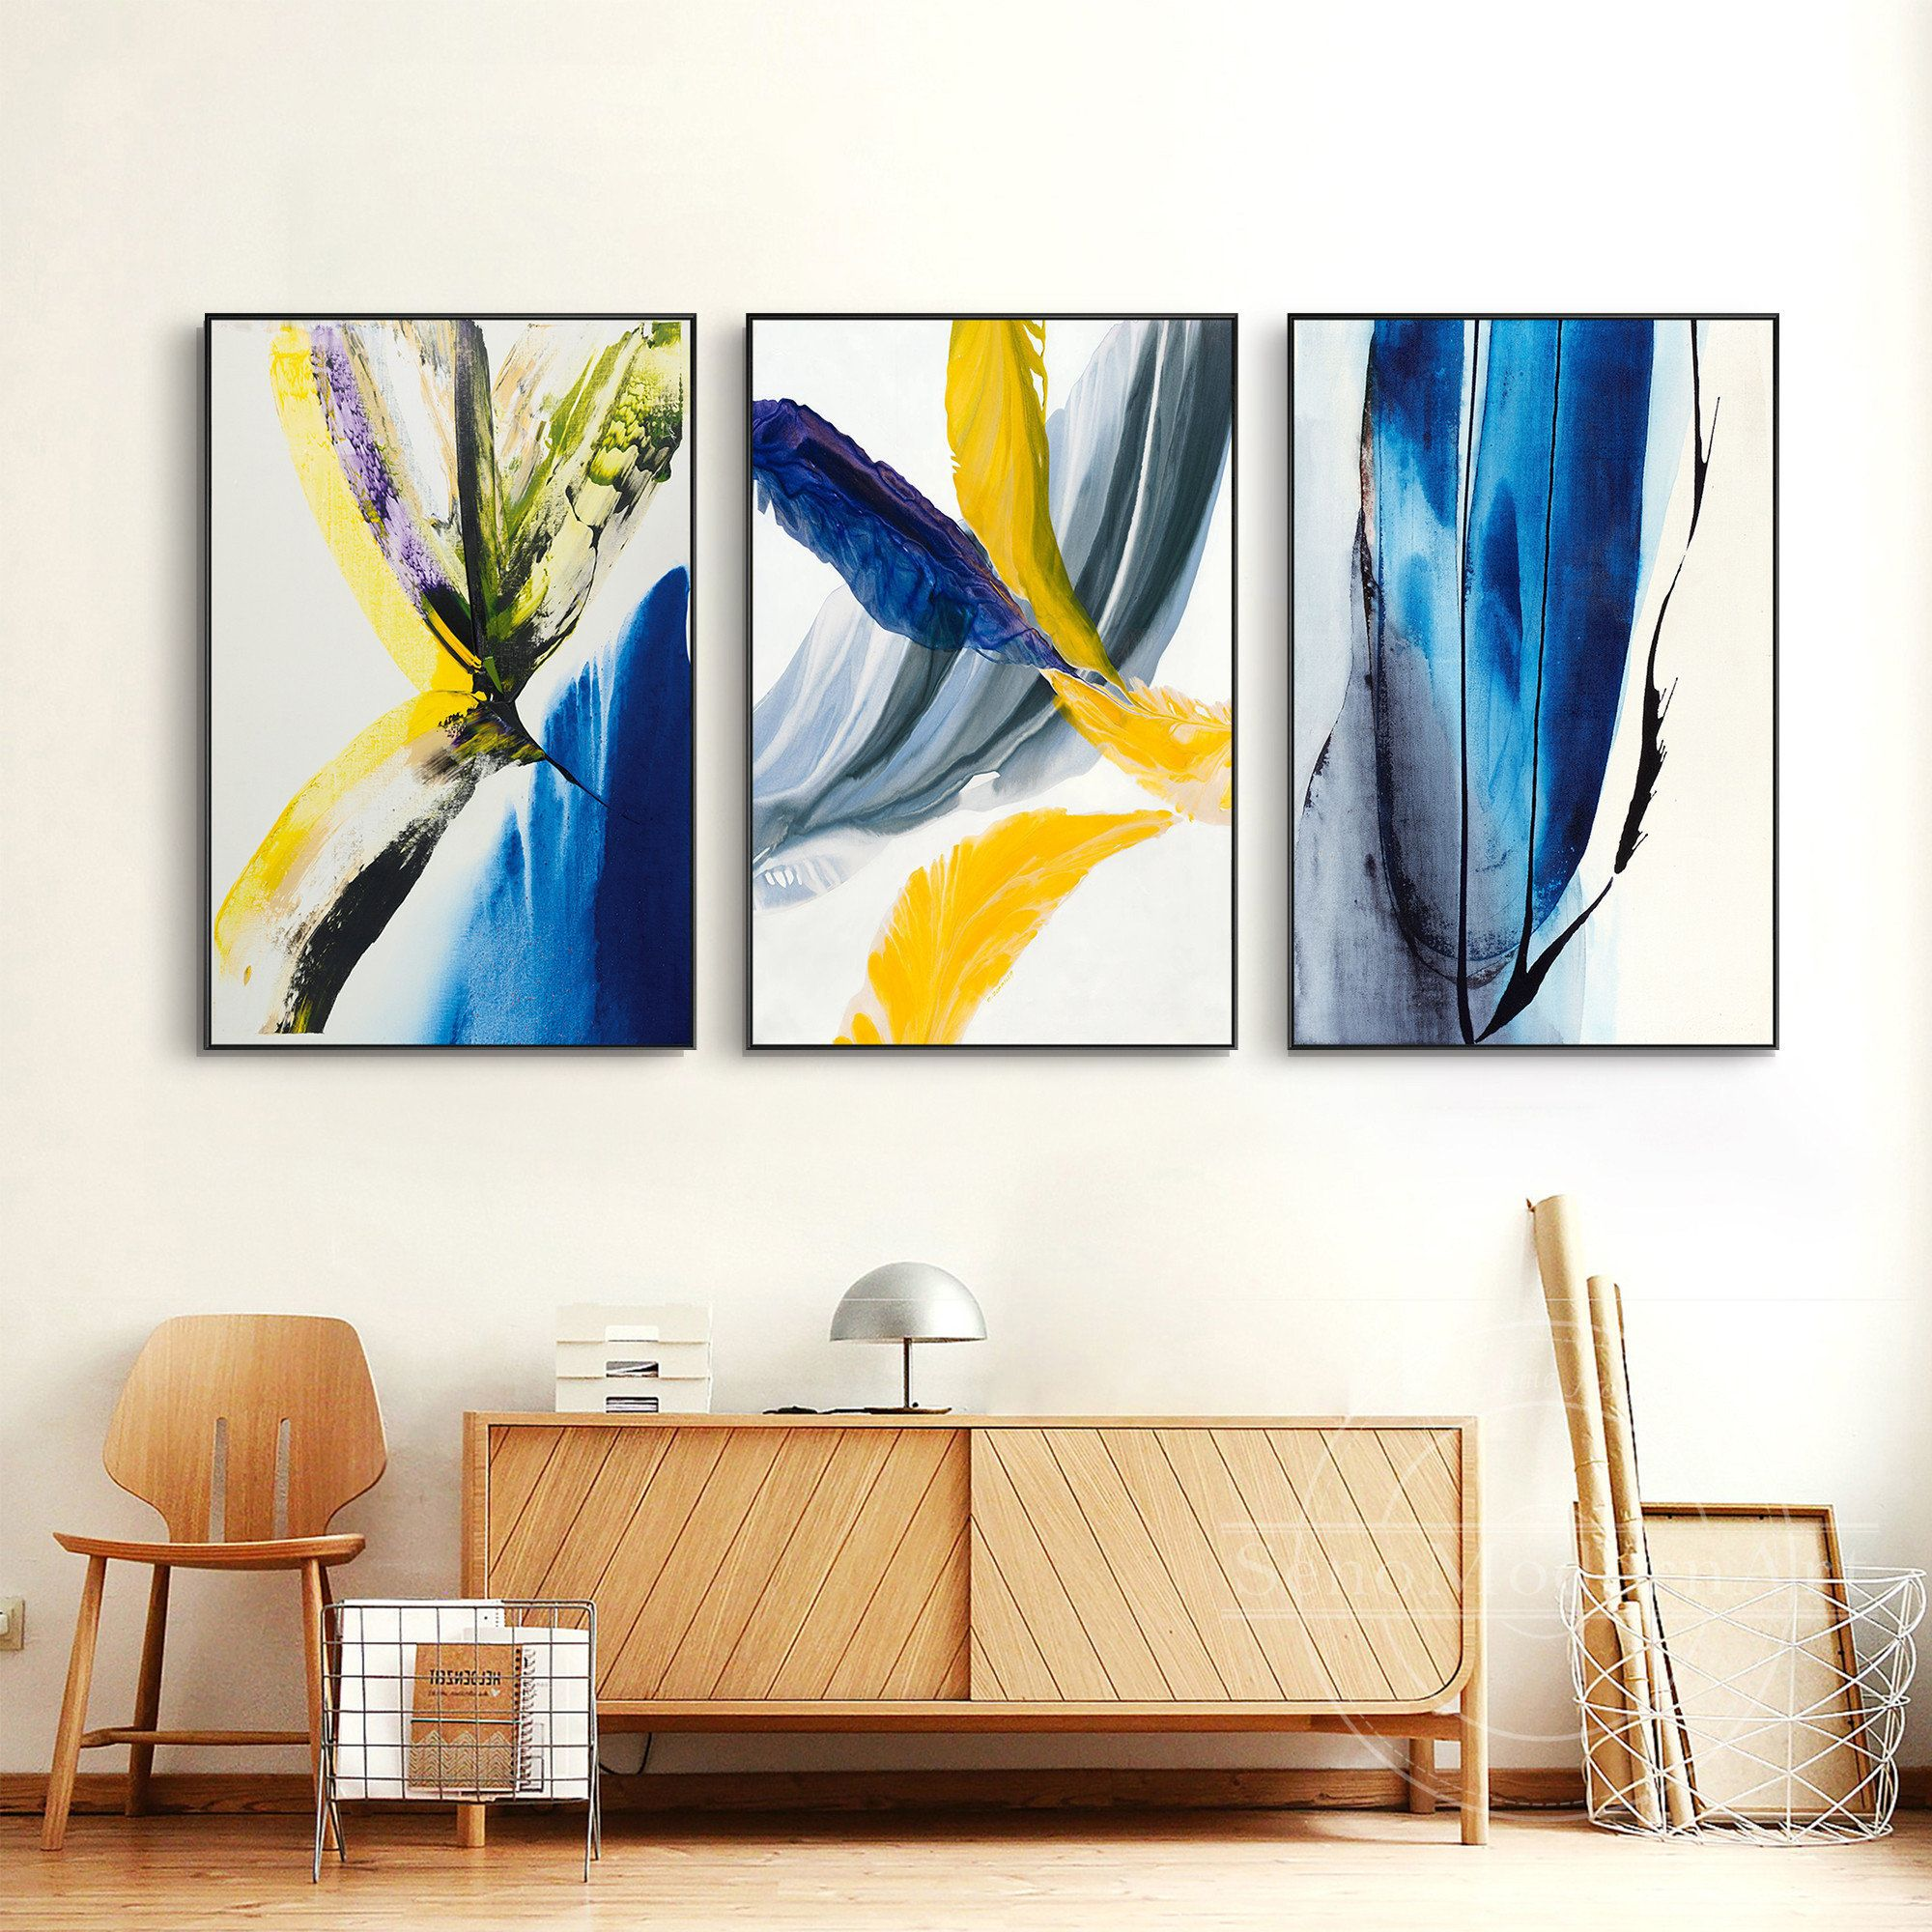 Set Of 3 Frame Wall Art Abstract Blue Black Yellow Grey Etsy In 2021 Canvas Wall Art Wall Canvas Framed Wall Art